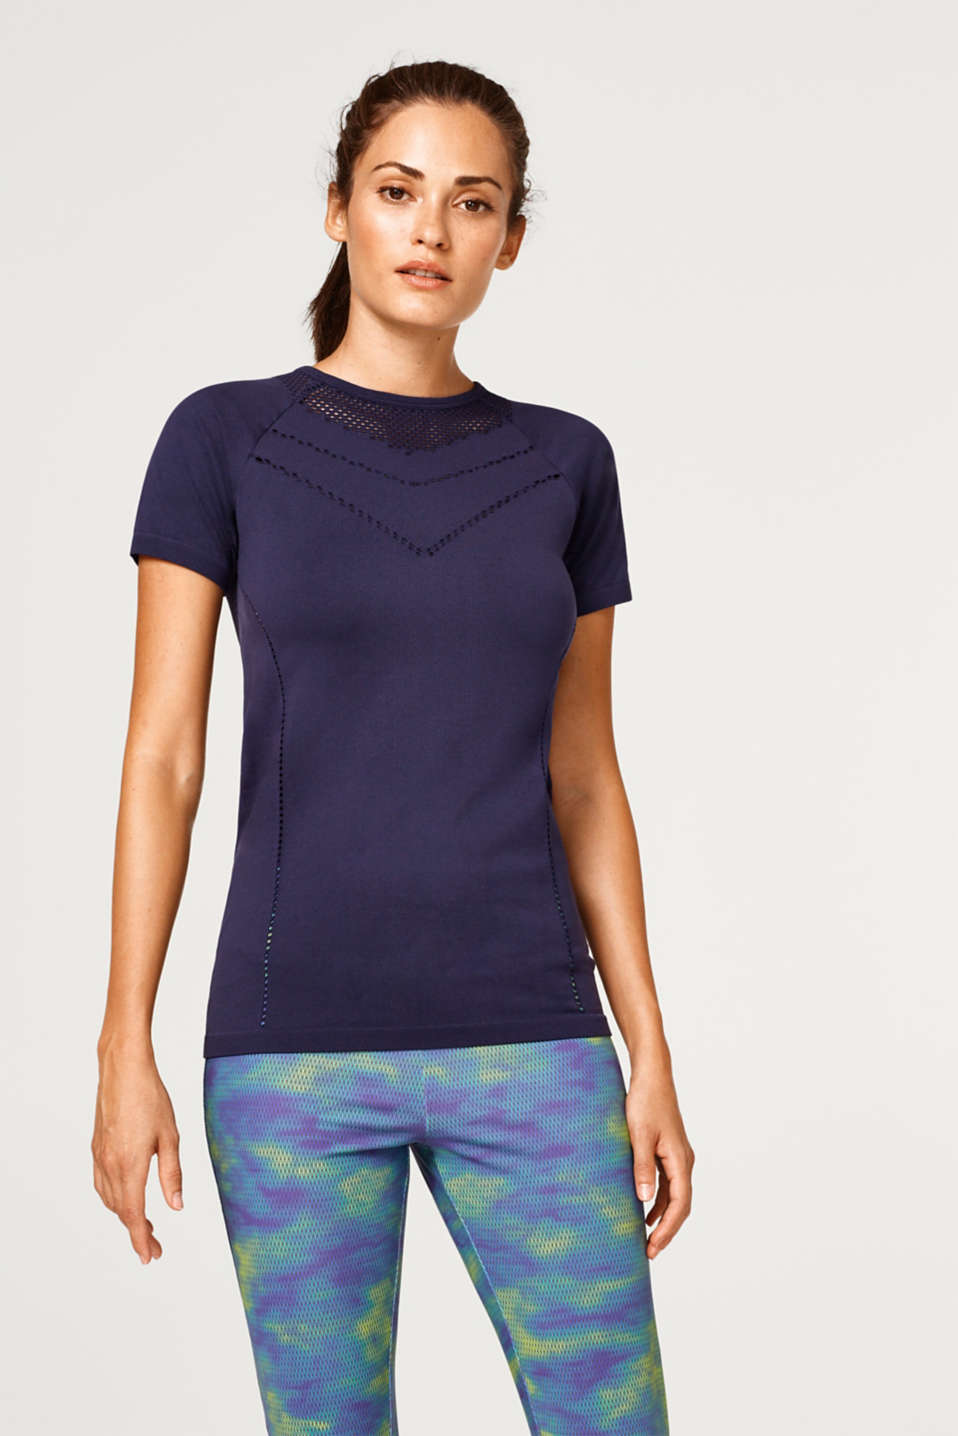 Esprit - Seamless active top with an open-work pattern, E-DRY